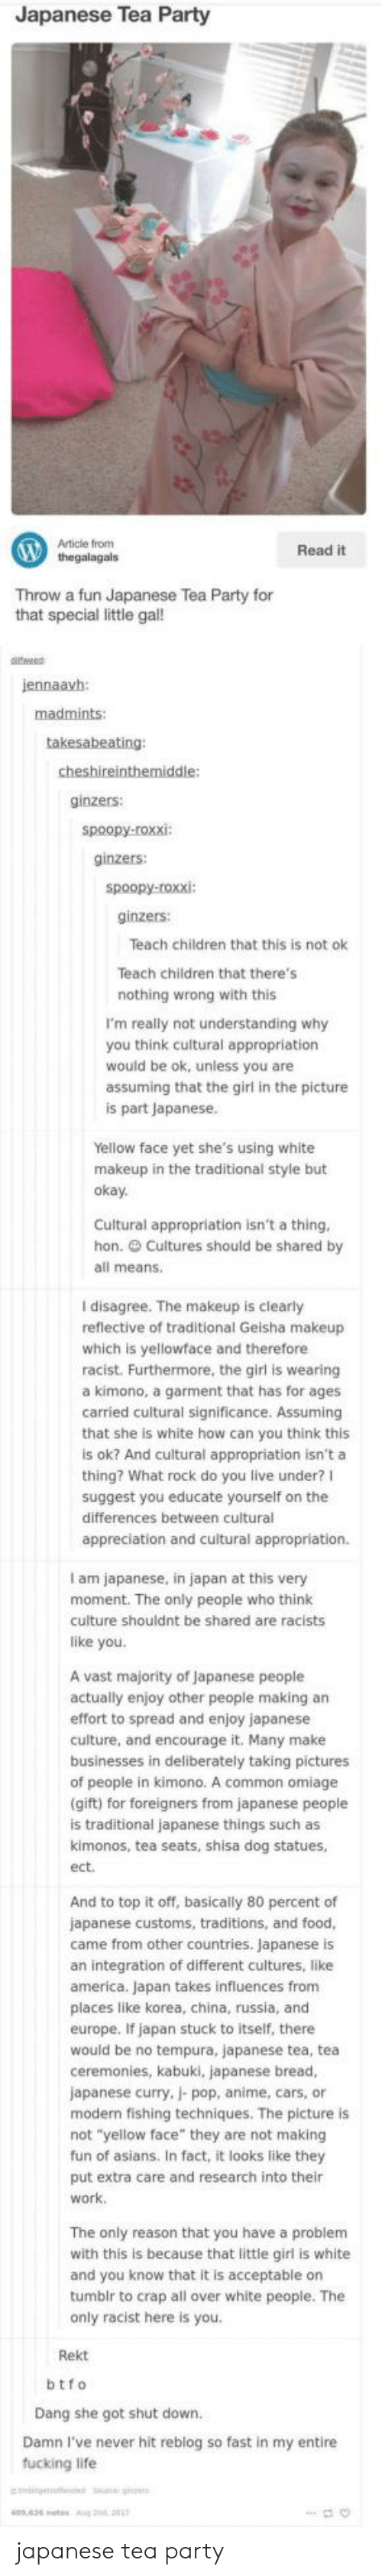 America, Anime, and Cars: Japanese Tea Party  Article from  thegalagals  Read it  Throw a  Throw a fun Japanese Tea Party for  that special little gal!  jennaavh  ginzers:  ginzers:  ginzers:  Teach children that this is not ok  Teach children that there's  nothing wrong with this  I'm really not understanding why  you think cultural appropriatiorn  would be ok, unless you are  assuming that the girl in the picture  is part Japanese  Yellow face yet she's using white  makeu  p in the traditional style but  oka  Cultural appropriation isn't a thing  hon. Cultures should be shared by  all means.  I disagree. The makeup is clearly  reflective of traditional Geisha makeup  which is yellowface and therefore  racist. Furthermore, the girl is wearing  a kimono, a garment that has for ages  carried cultural significance. Assuming  that she is white how can you think this  is ok? And cultural appropriation isn't a  thing? What rock do you live under?I  suggest you educate yourself on the  differences between cultural  appreciation and cultural appropriation.  I am japanese, in japan at this very  moment. The only people who think  culture shouldnt be shared are racists  like you.  A vast majority of Japanese people  actually enjoy other people making an  effort to spread and enjoy japanese  culture, and encourage it. Many make  businesses in deliberately taking pictures  of people in kimono. A common omiage  gift) for foreigners from japanese people  is traditional japanese things such as  kimonos, tea seats, shisa dog statues,  ect  And to top it off, basically 80 percent of  japanese customs, traditions, and food  came from other countries. Japanese is  an integration of different cultures, like  america. Japan takes influences from  places like korea, china, russia, and  europe. If japan stuck to itself, there  would be no tempura, japanese tea, tea  ceremonies, kabuki, japanese bread,  japanese curry, j- pop, anime, cars, or  modern fishing techniques. The picture is  no